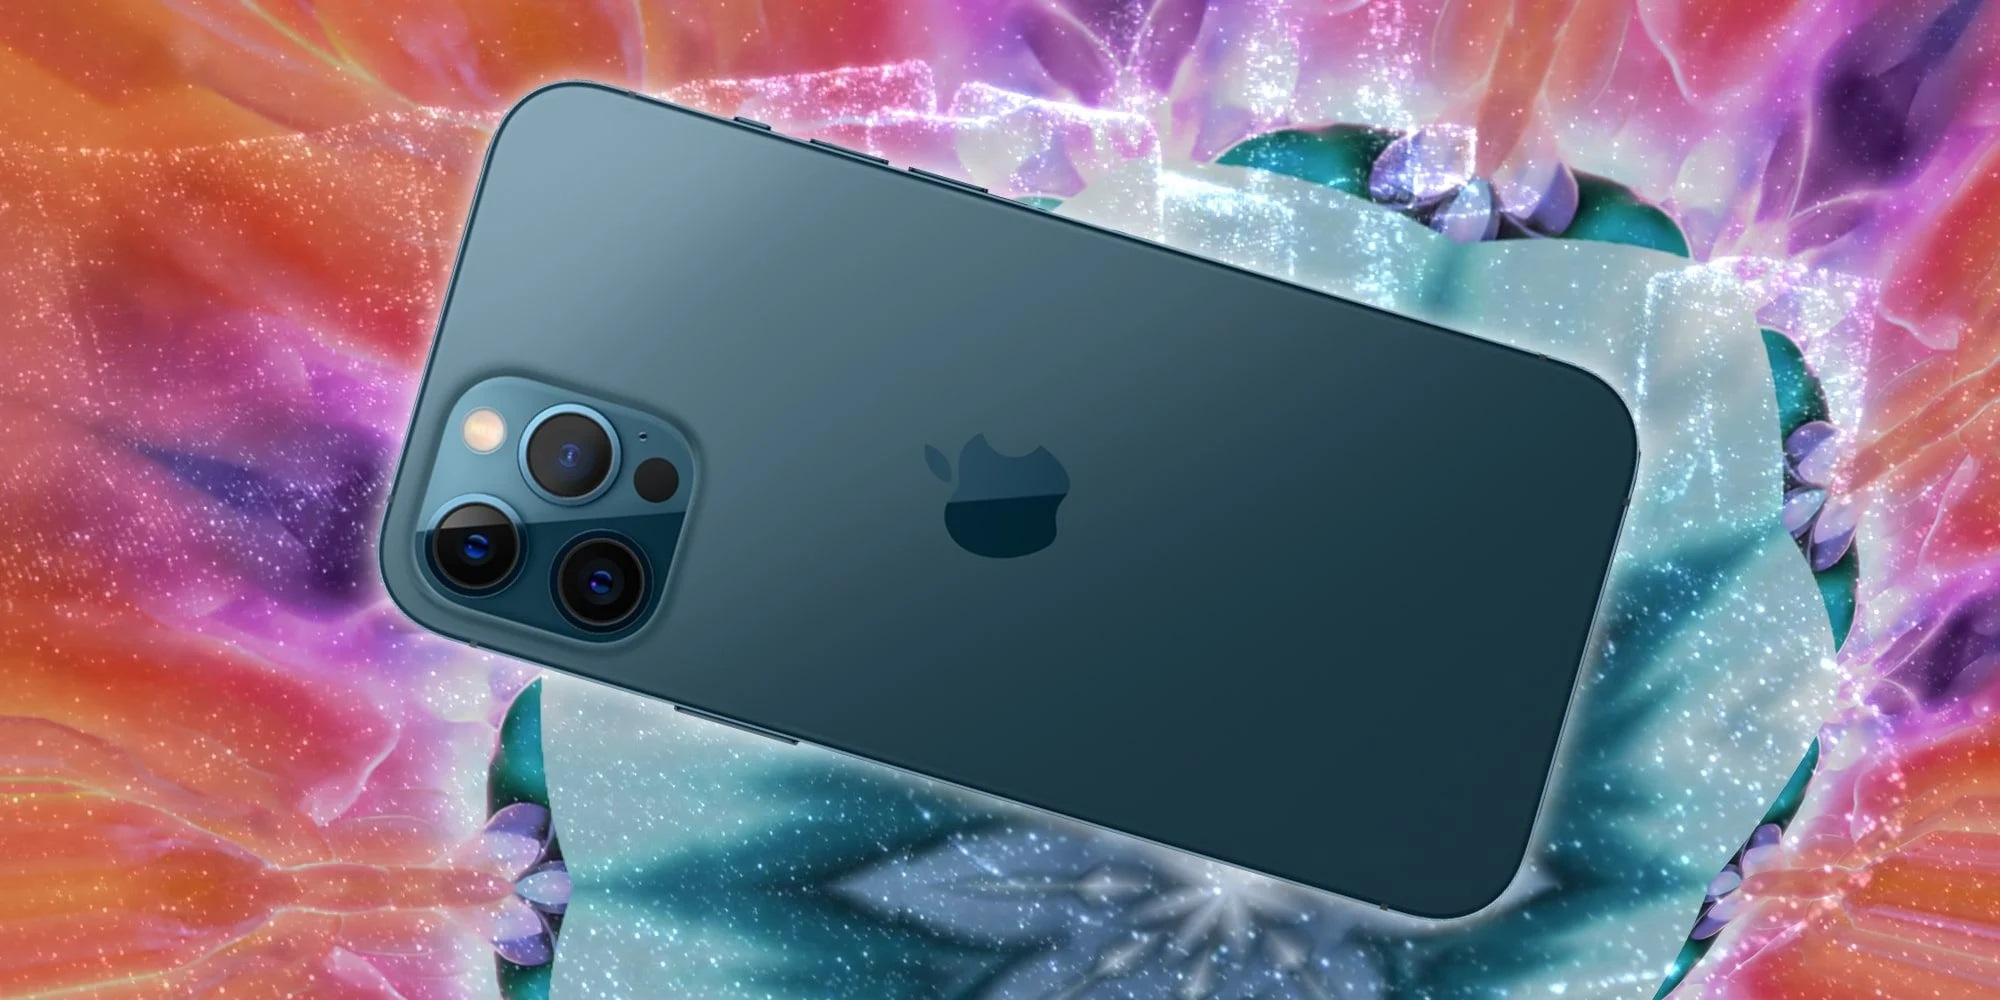 Apple iPhone 12 Pro Max a bigger and more expensive alternative